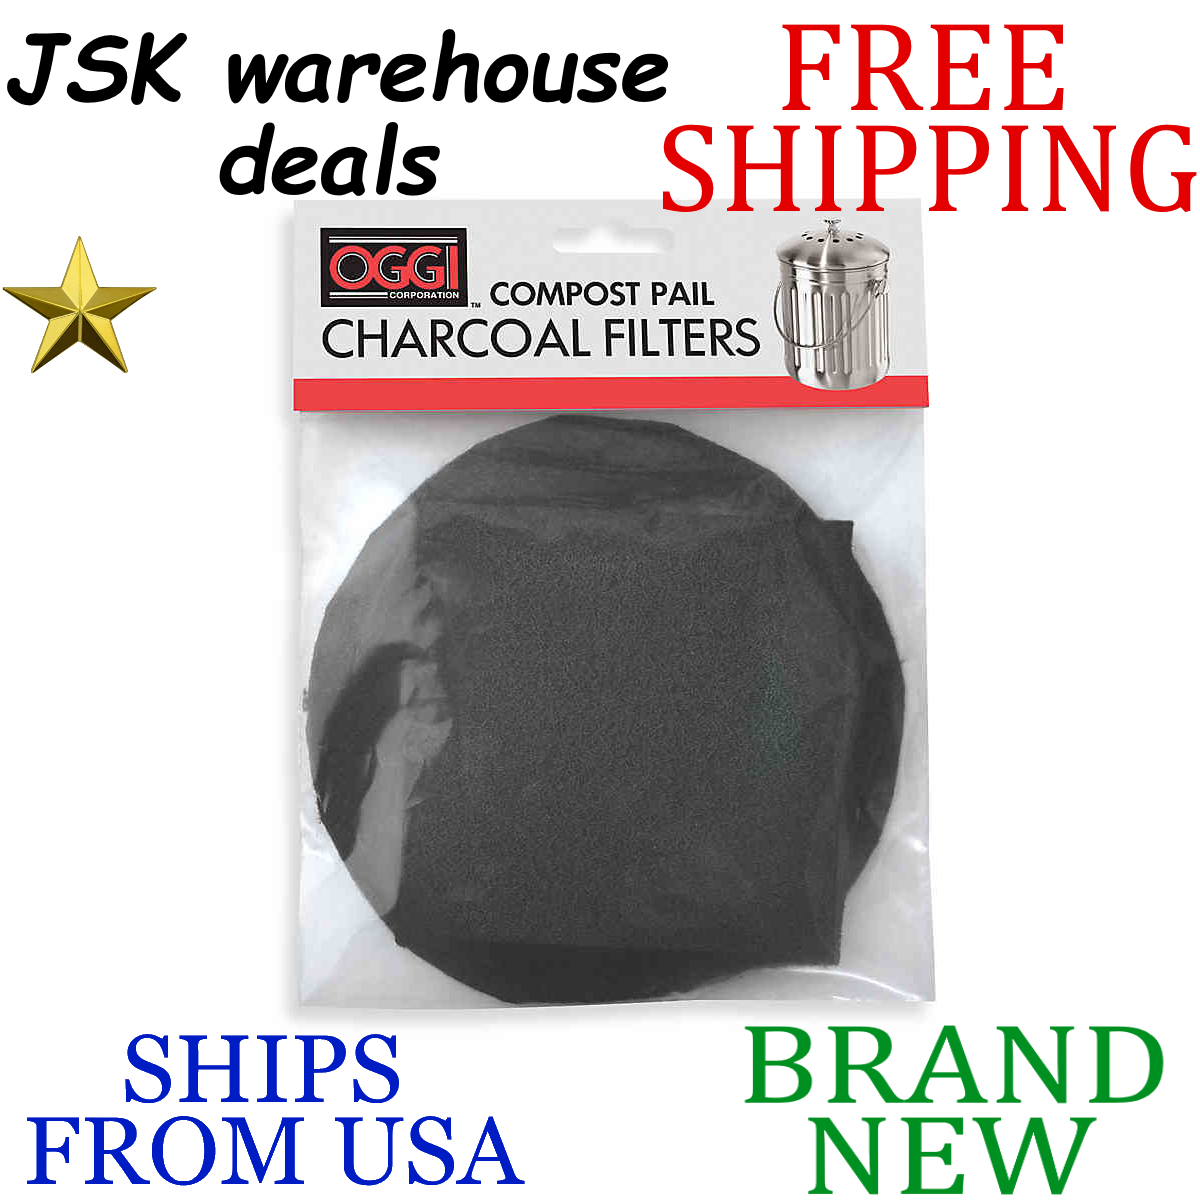 Set of 2 5427 5448 and 7700 Oggi Replacement Charcoal Filters for Compost Pails # 7320